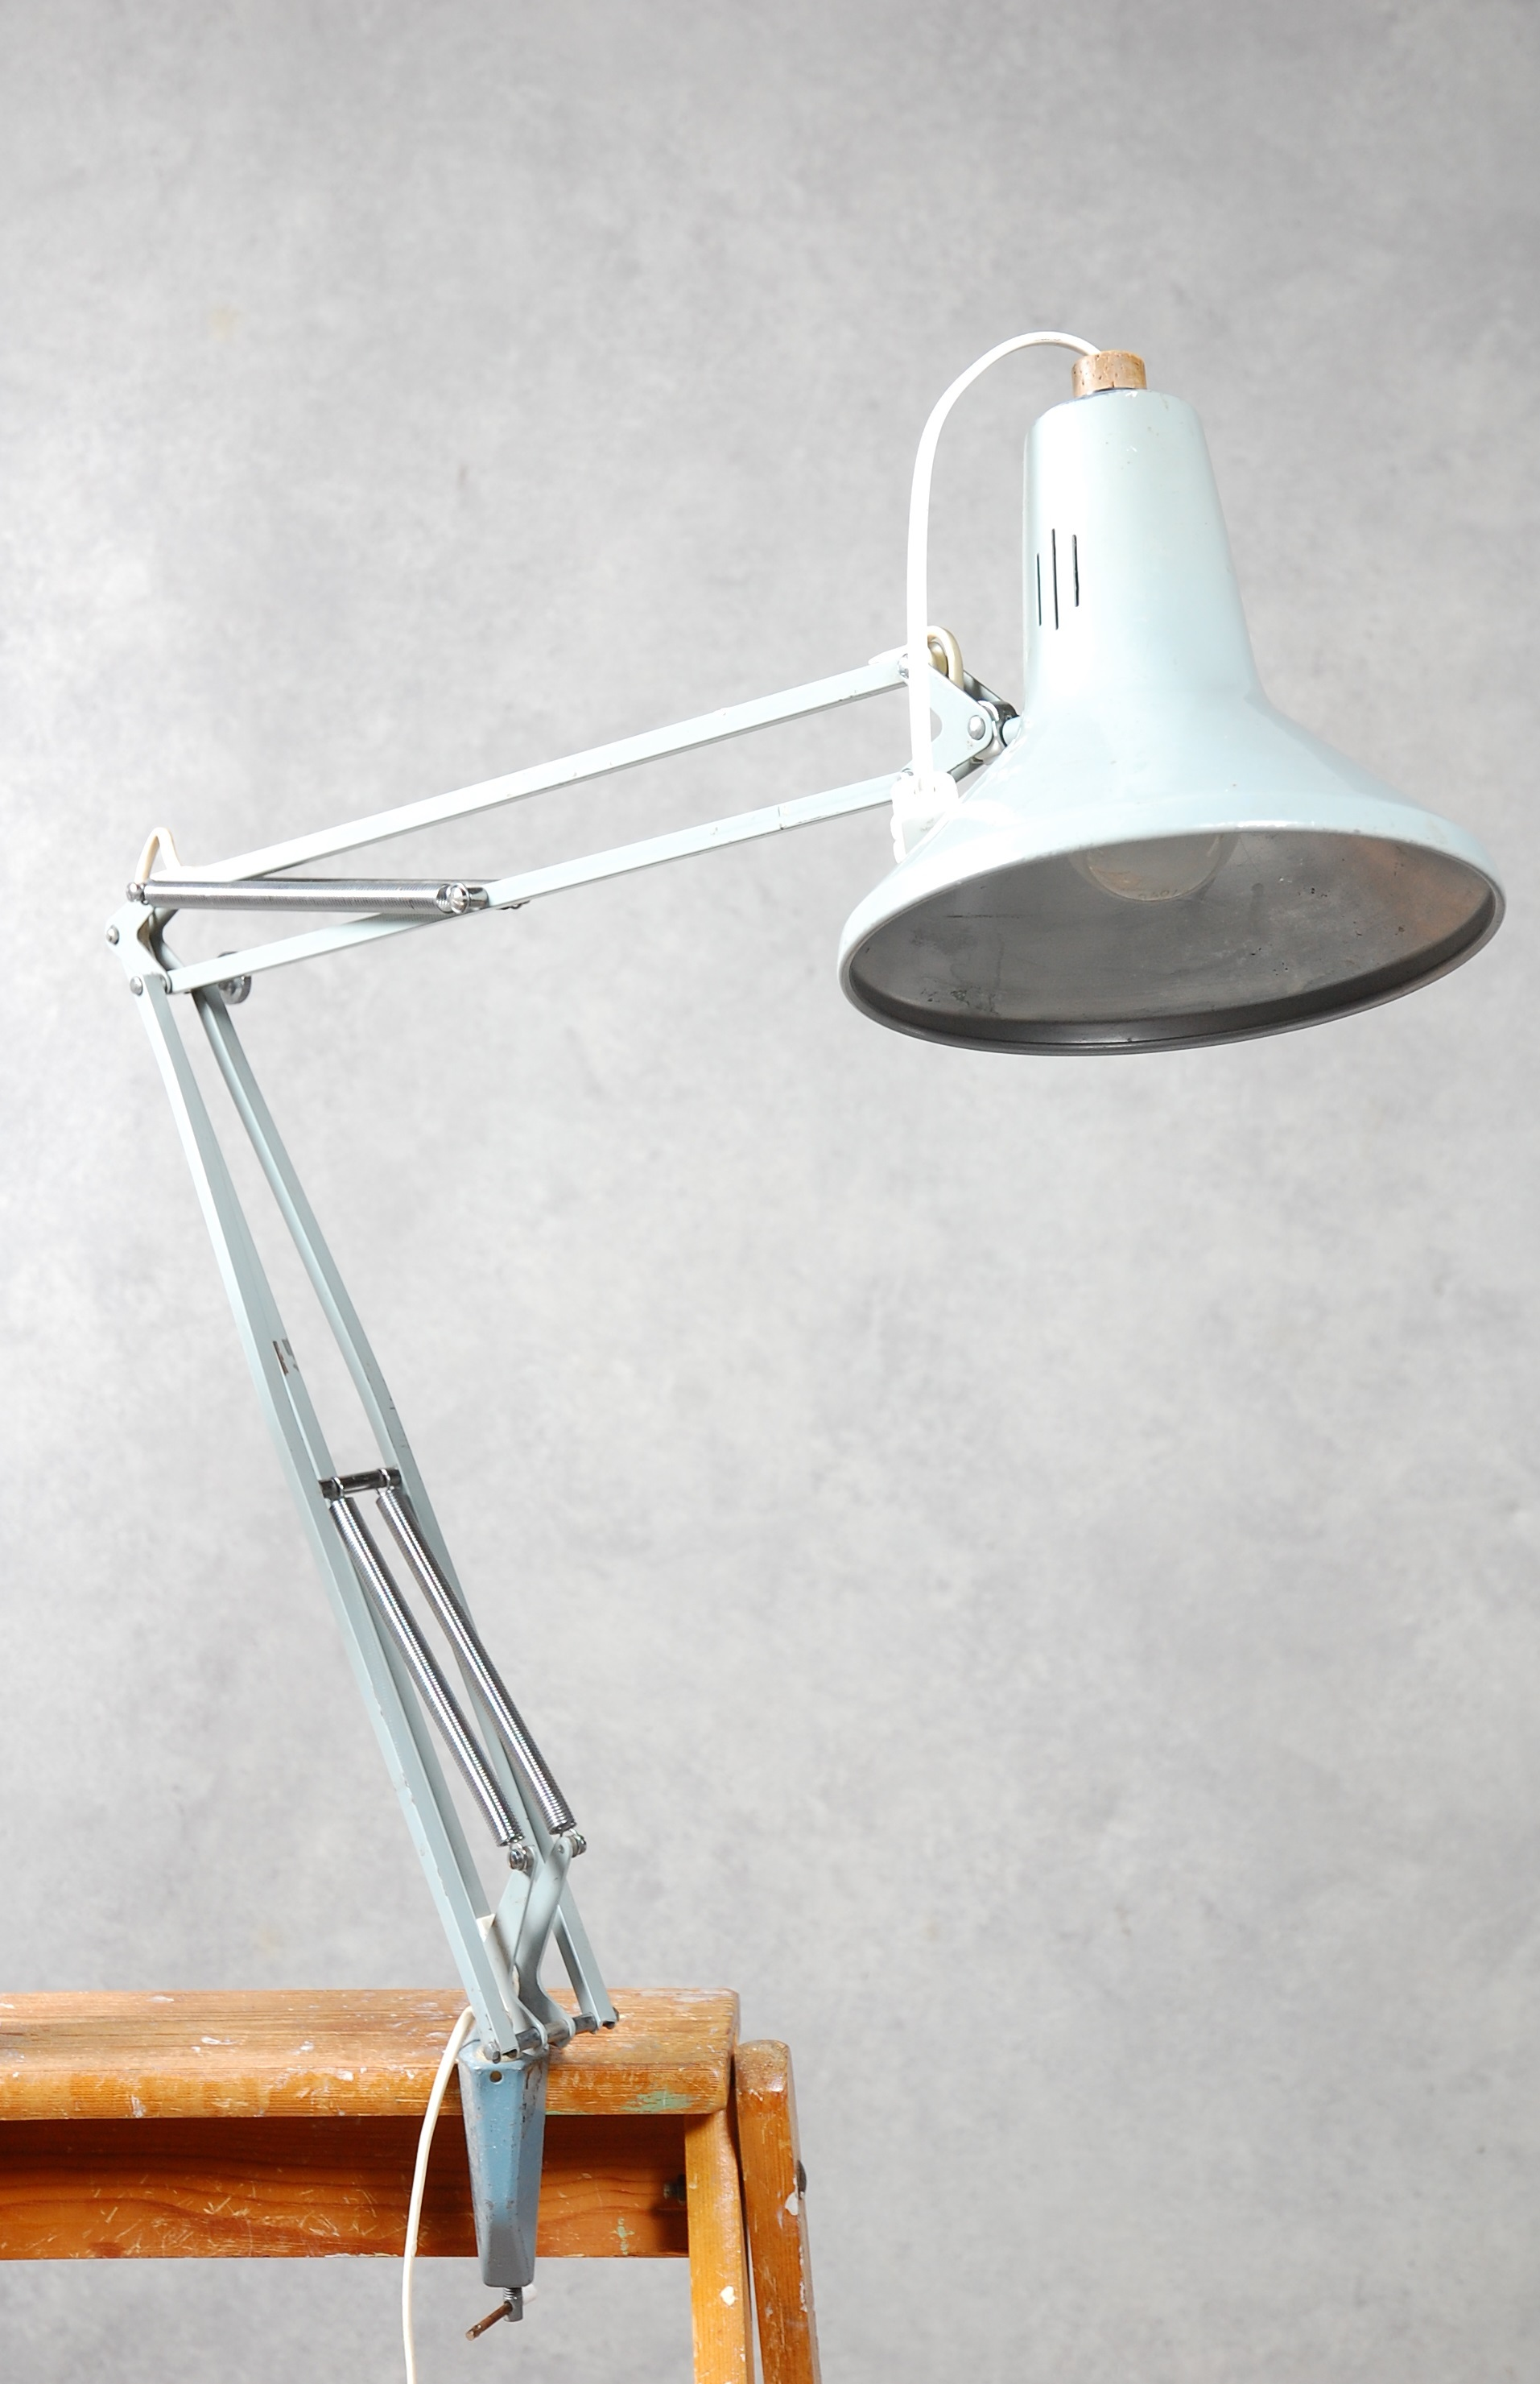 Architect Light Luxo L 1p Lighting Lamps Other Lighting Auctionet